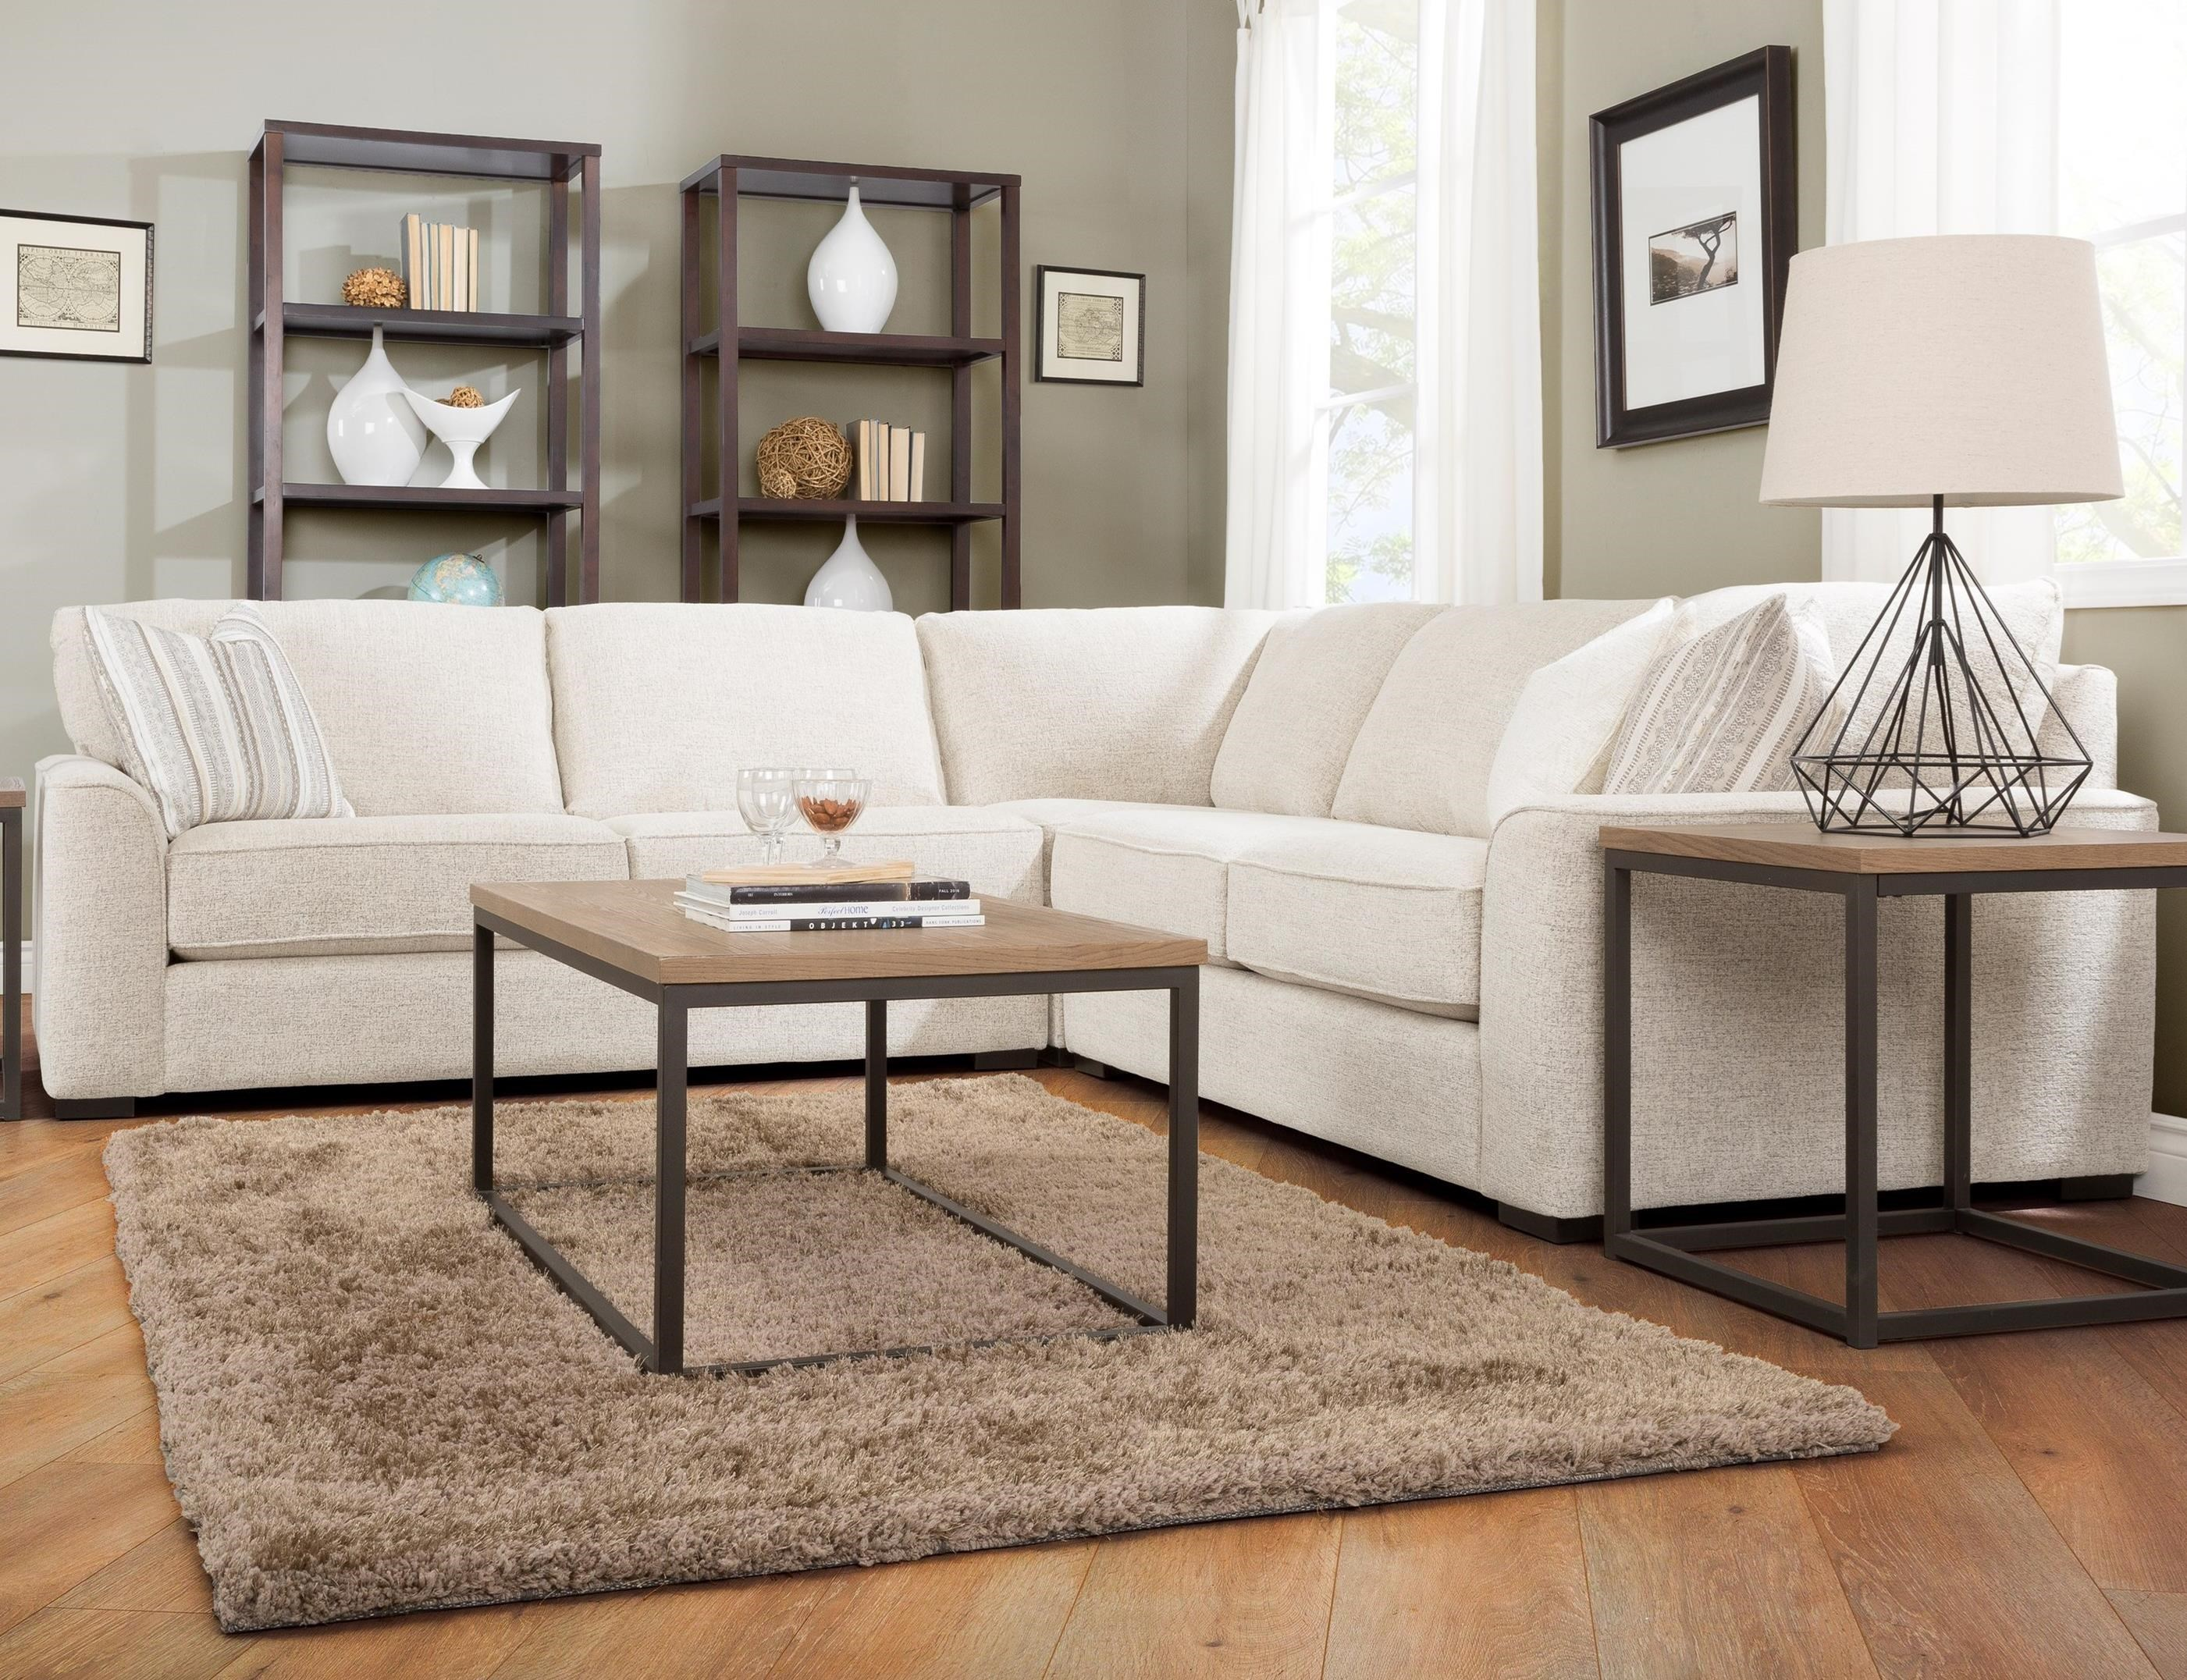 But Meubles Etna 2786 Three Piece Corner Sectional Sofa By Decor Rest At Stoney Creek Furniture